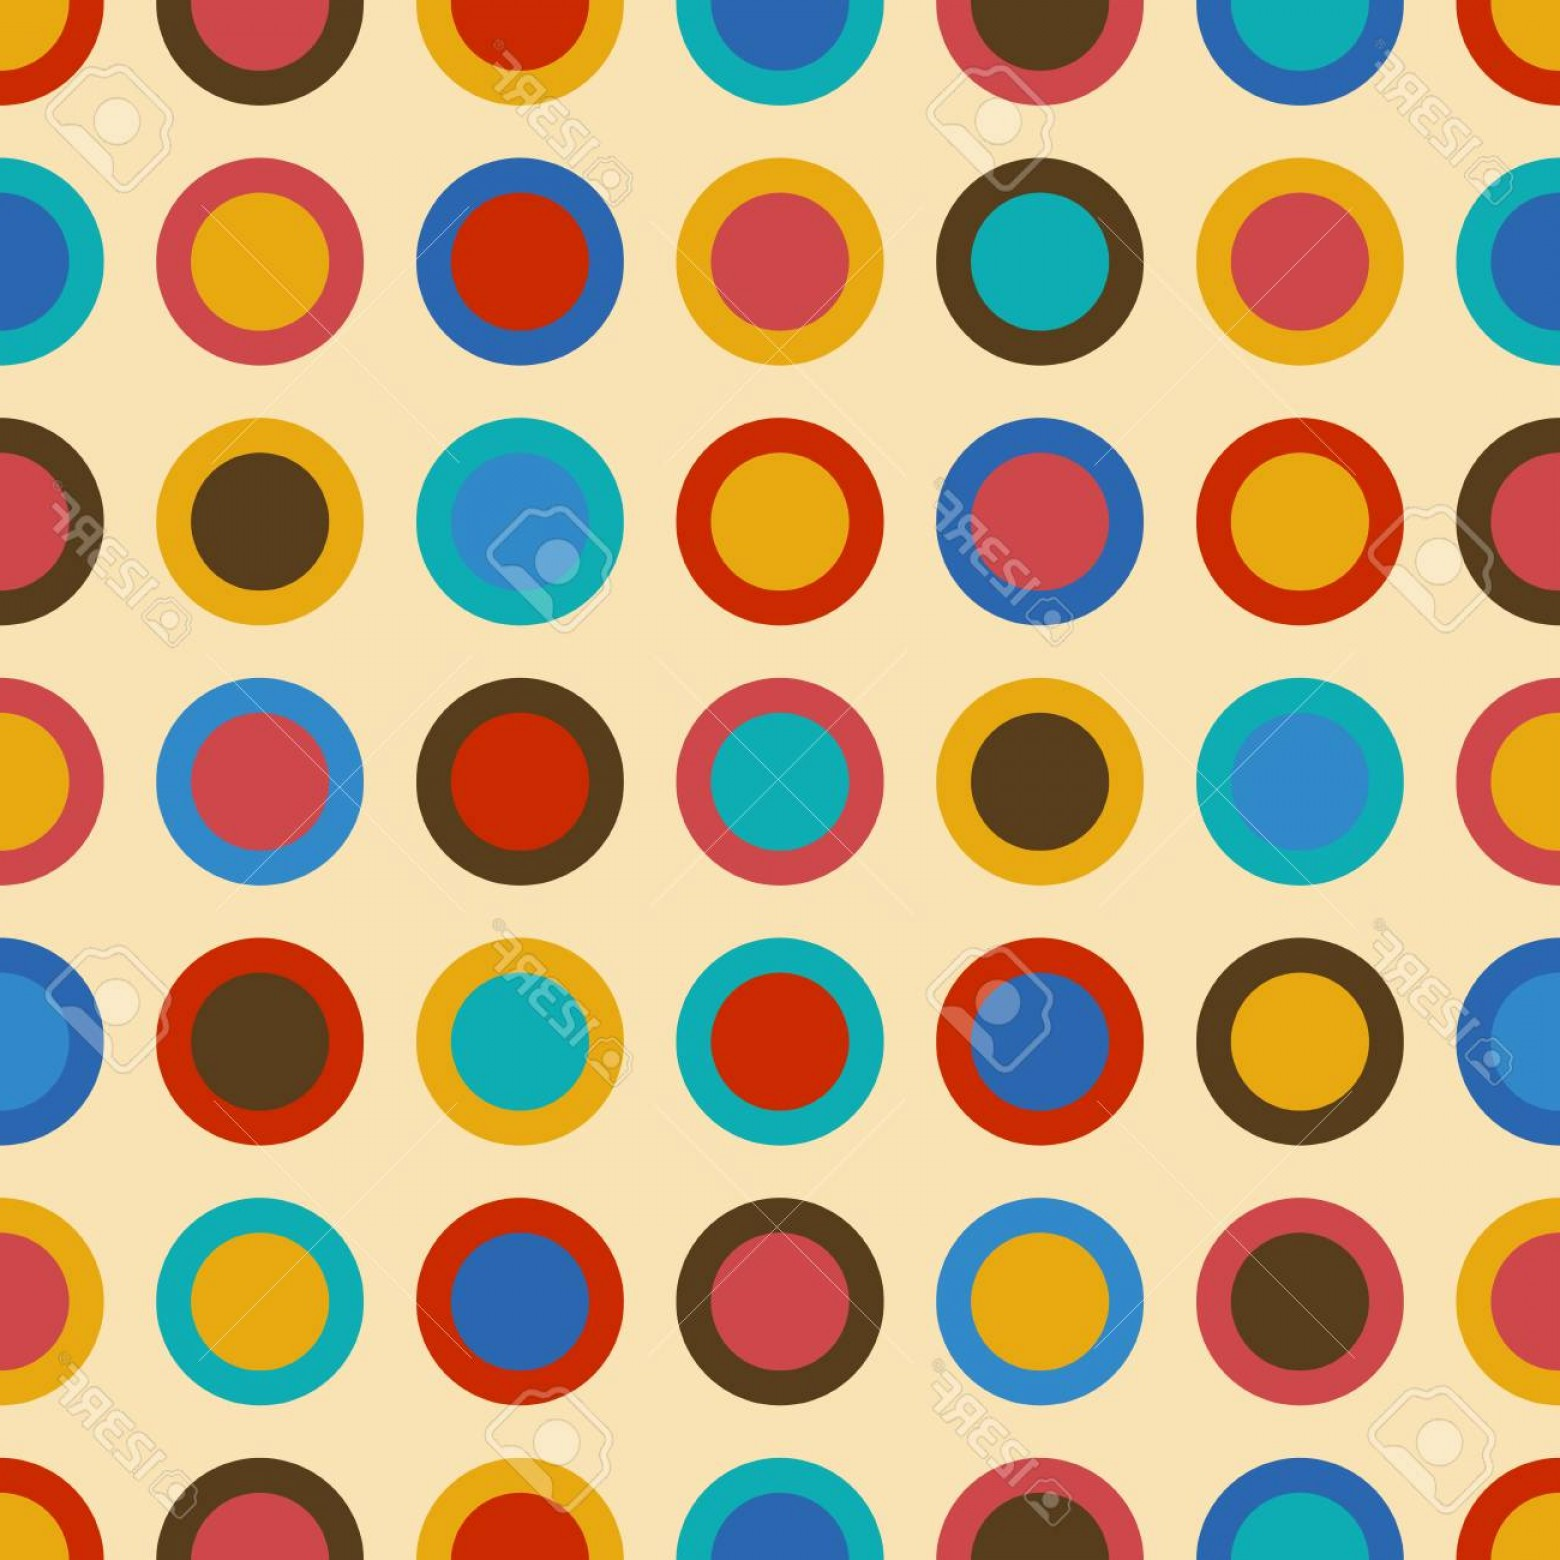 Blue And Orange Circle Vector: Photostock Vector Stylish Background Seamless Pattern With Red Blue Brown And Orange Circles In Vintage Or Retro Style